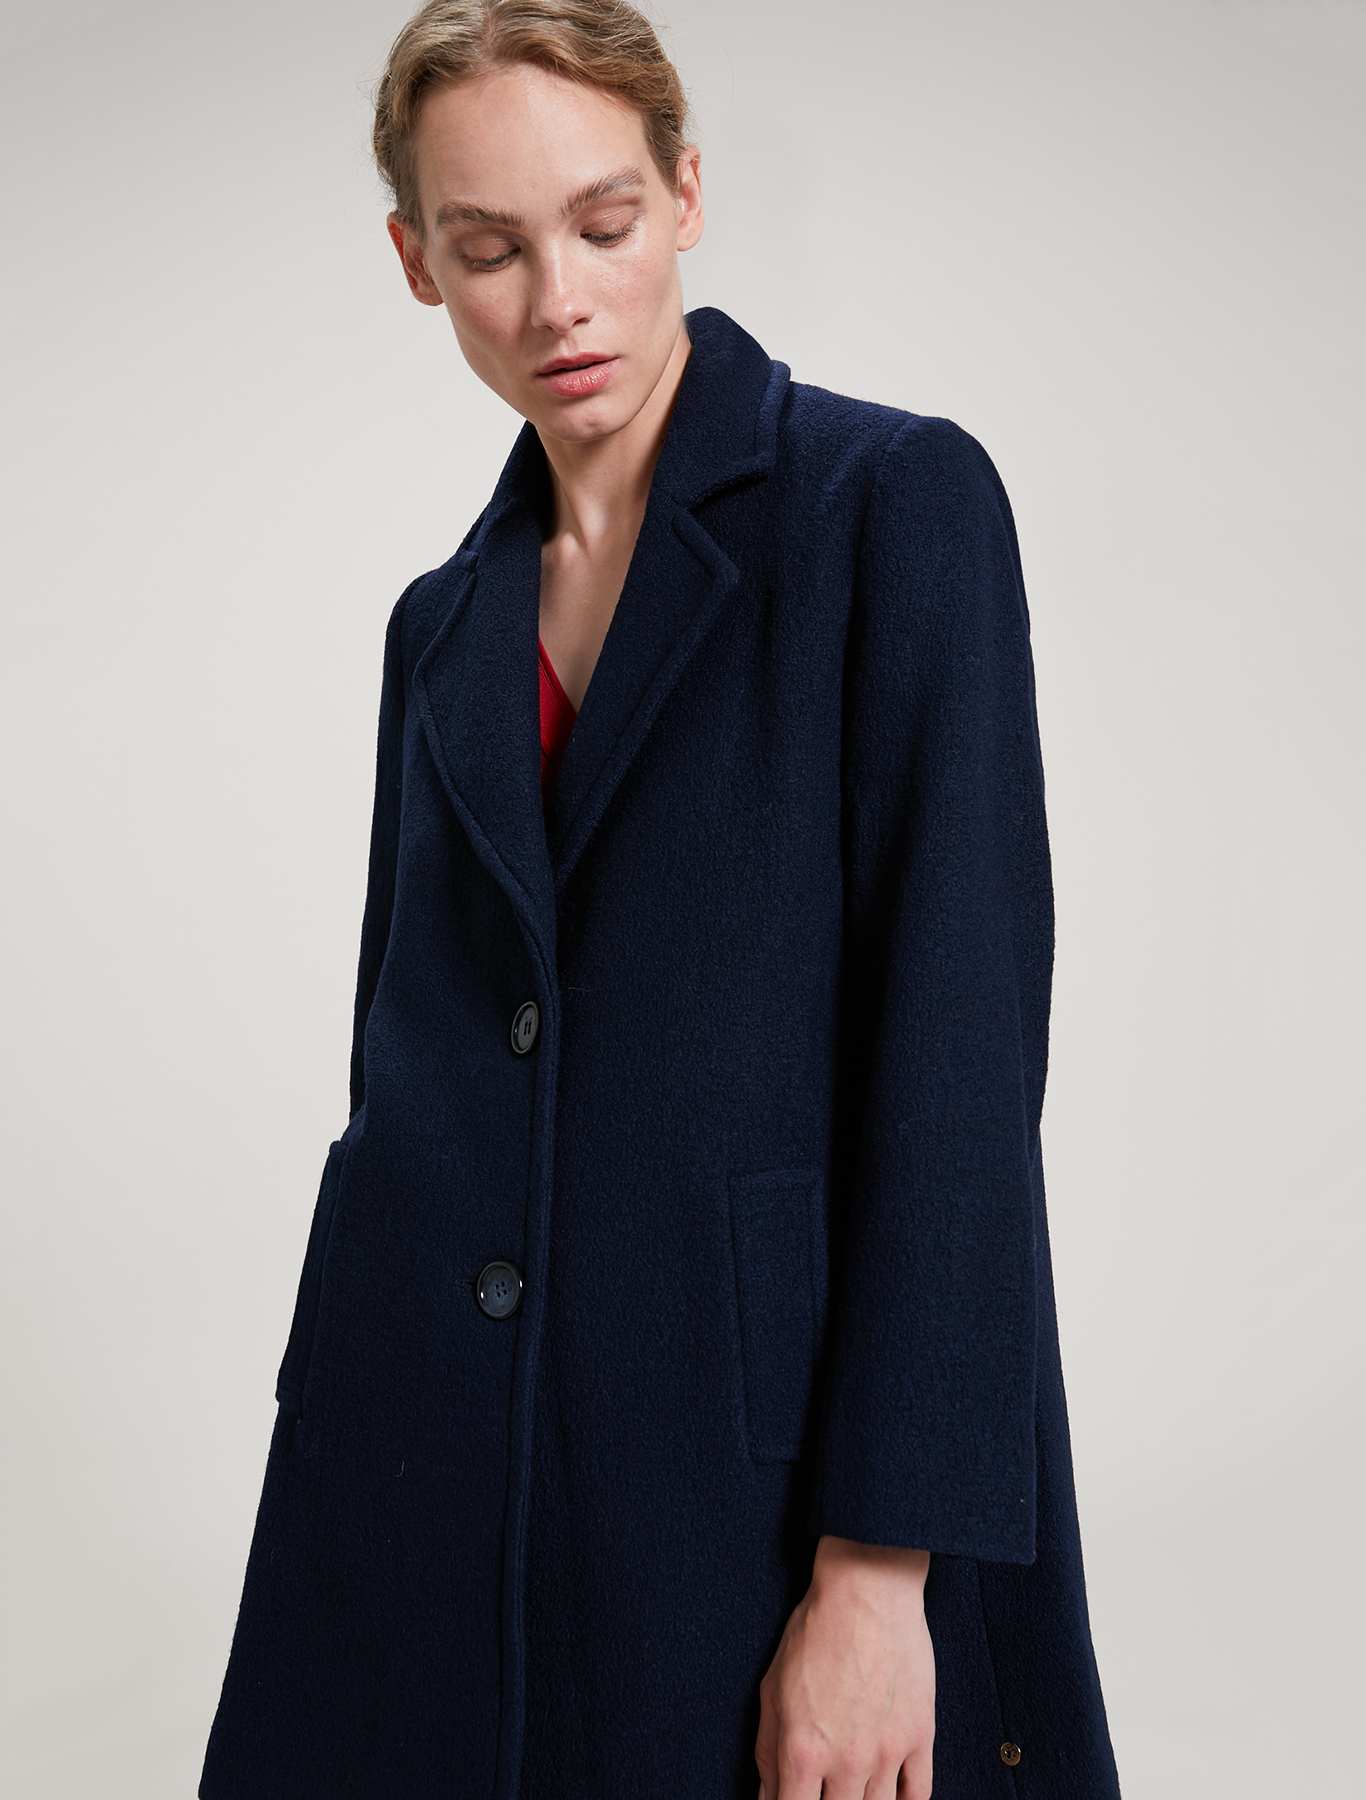 Boiled wool coat - navy blue - pennyblack